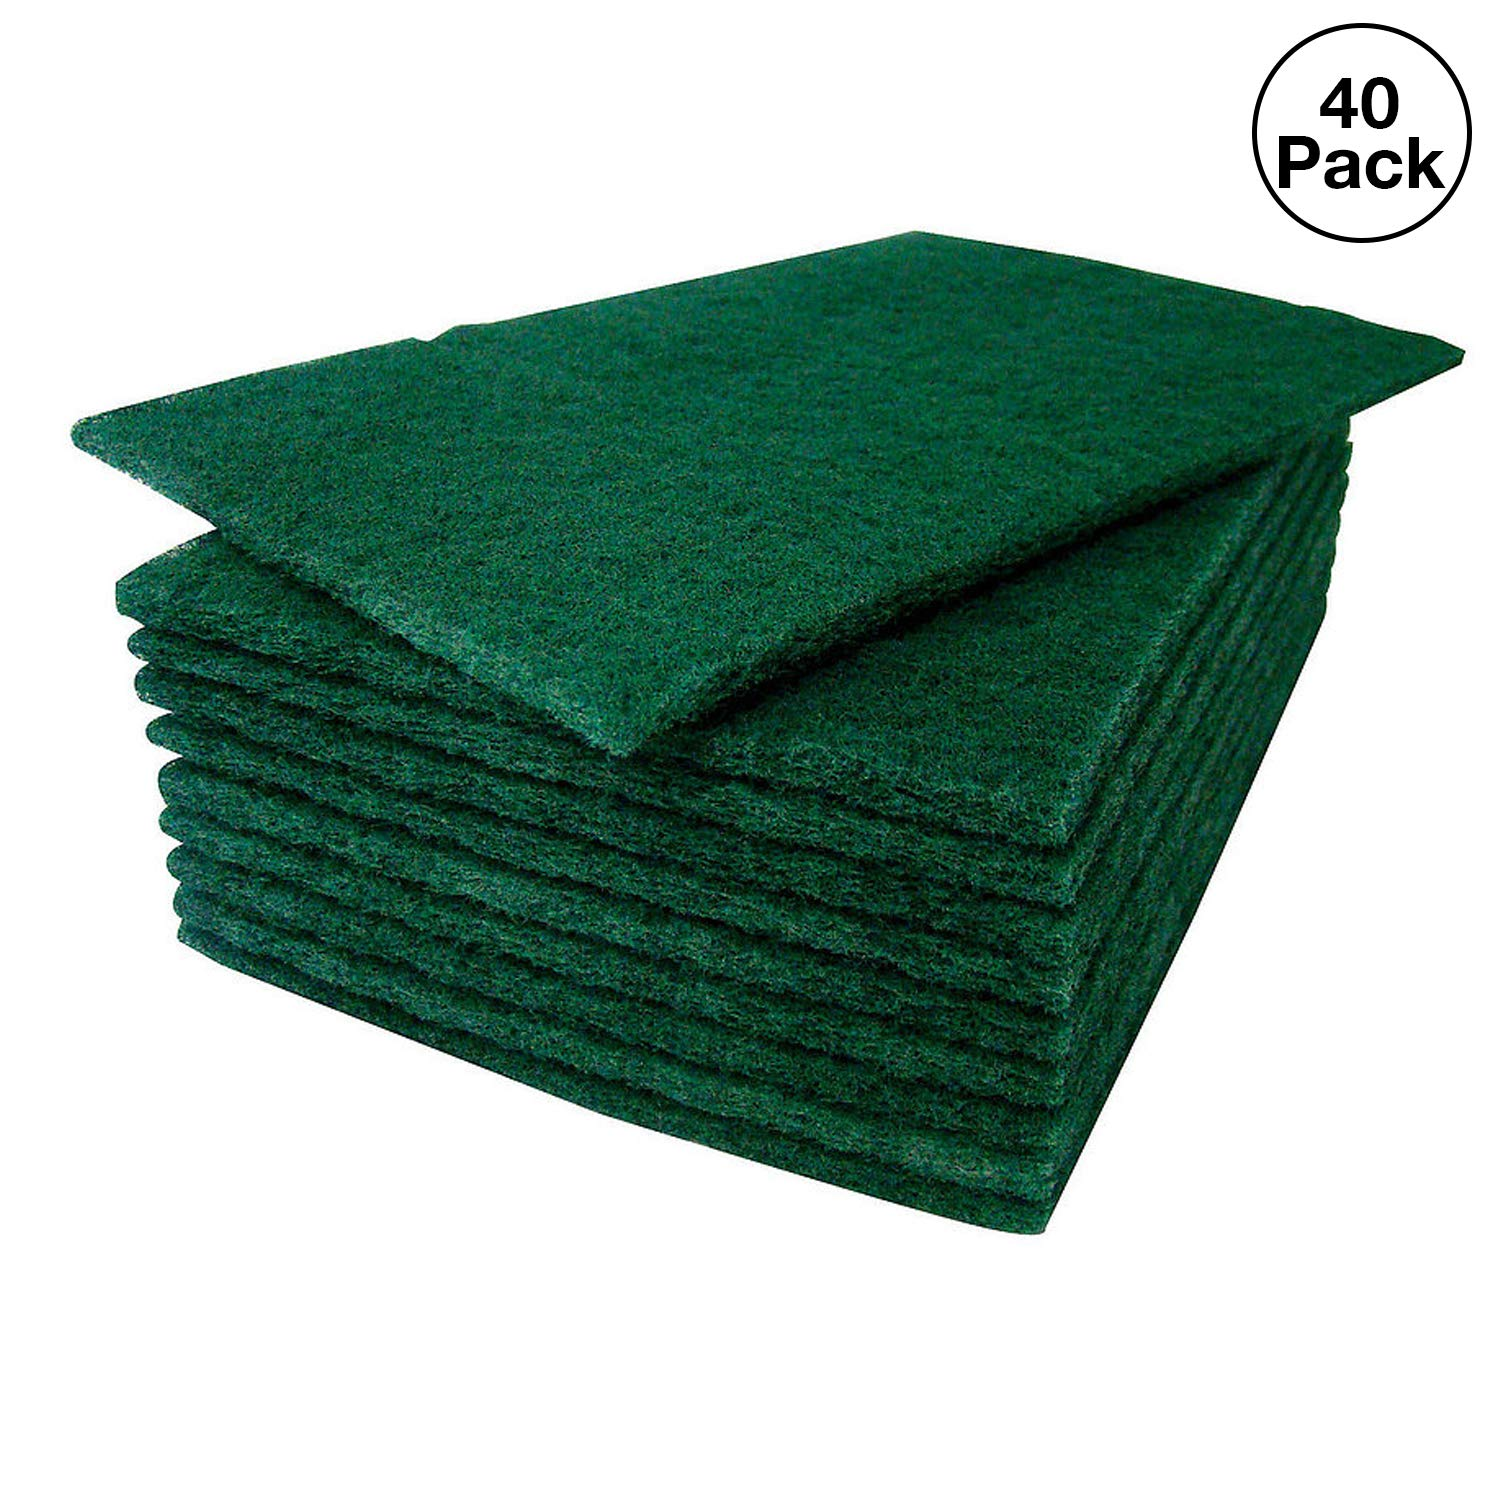 HeRO Dish Scrubber Scouring Pads - Household Scrub Pads for Stove Top Cleaner and Kitchen Scrubbers for Dishes, Cuts Solvents & Greasy Messes, Green 4.5 x 6 inch (Pack of 40)